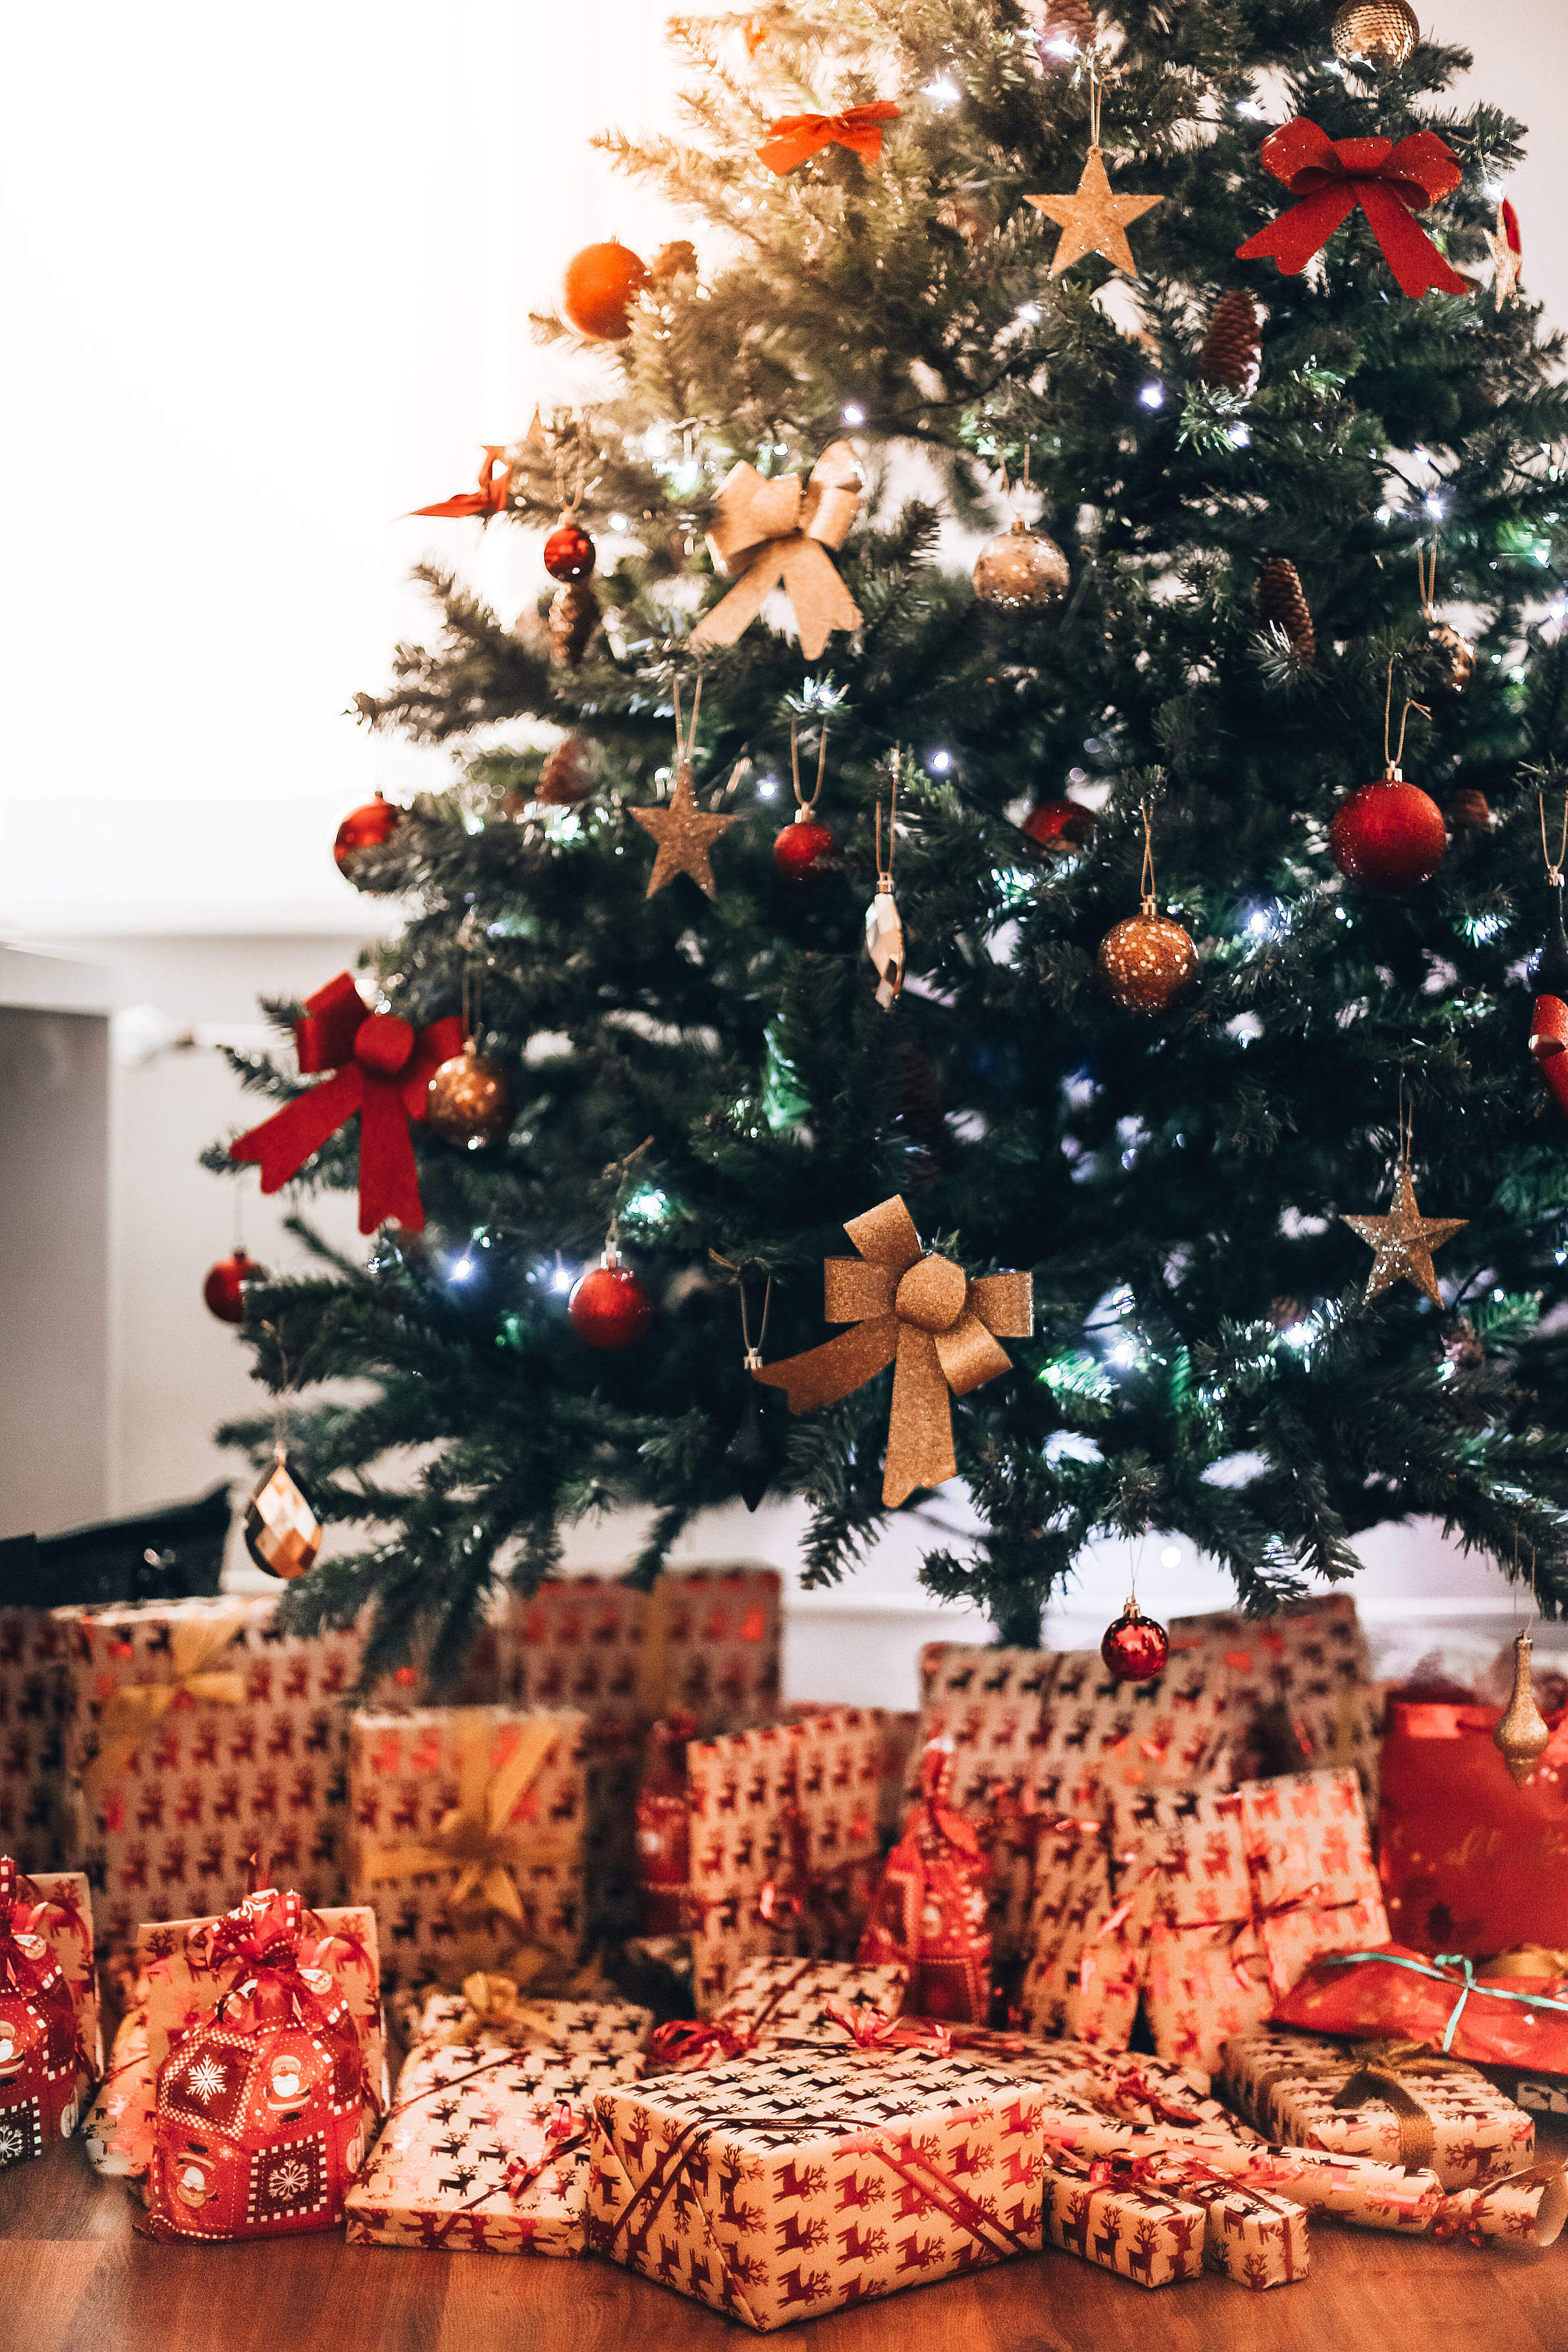 Christmas Tree with Presents Vertical Free Stock Photo